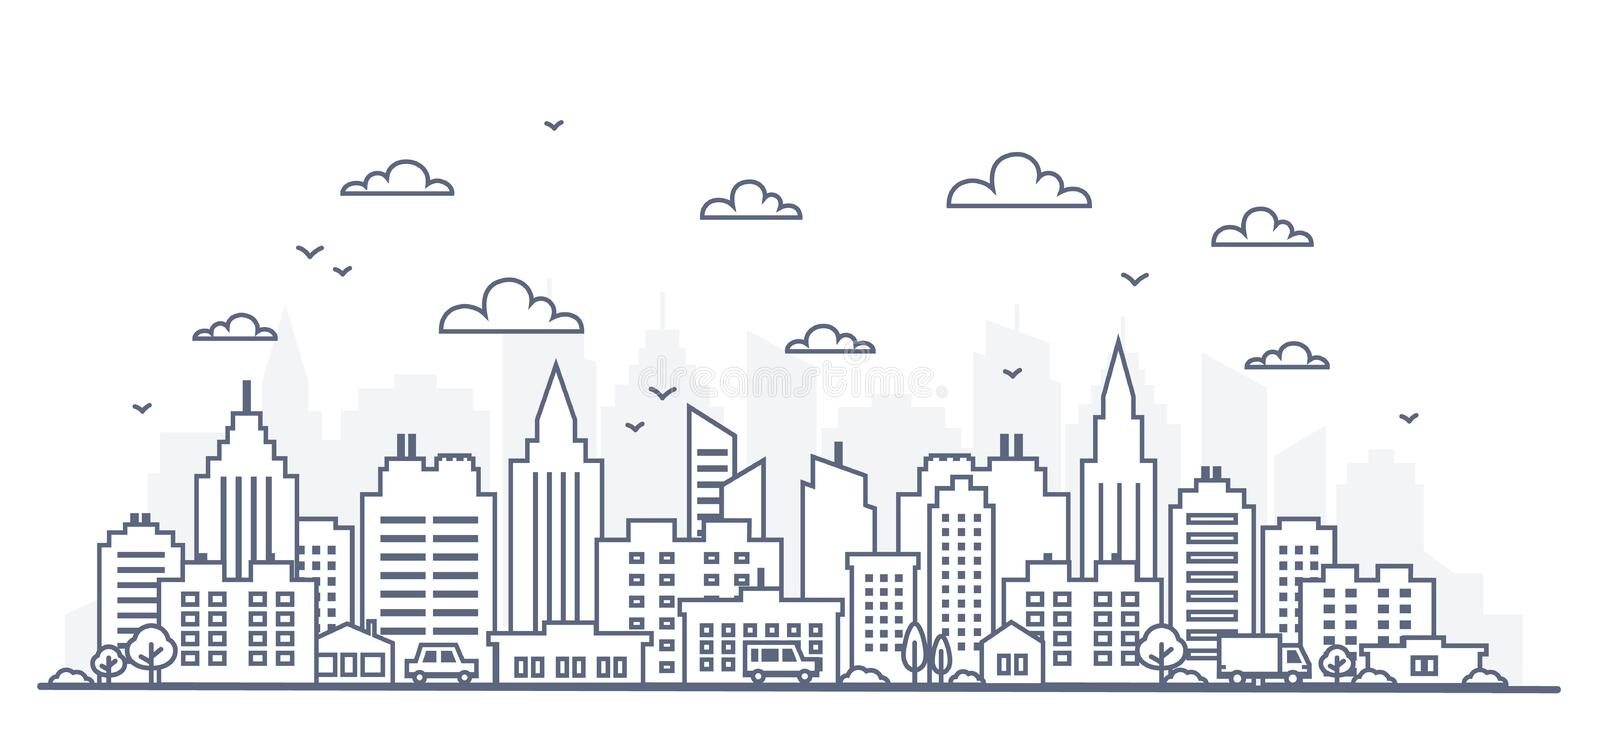 Thin line style city panorama. Illustration of urban landscape street with cars, skyline city office buildings, on light vector illustration